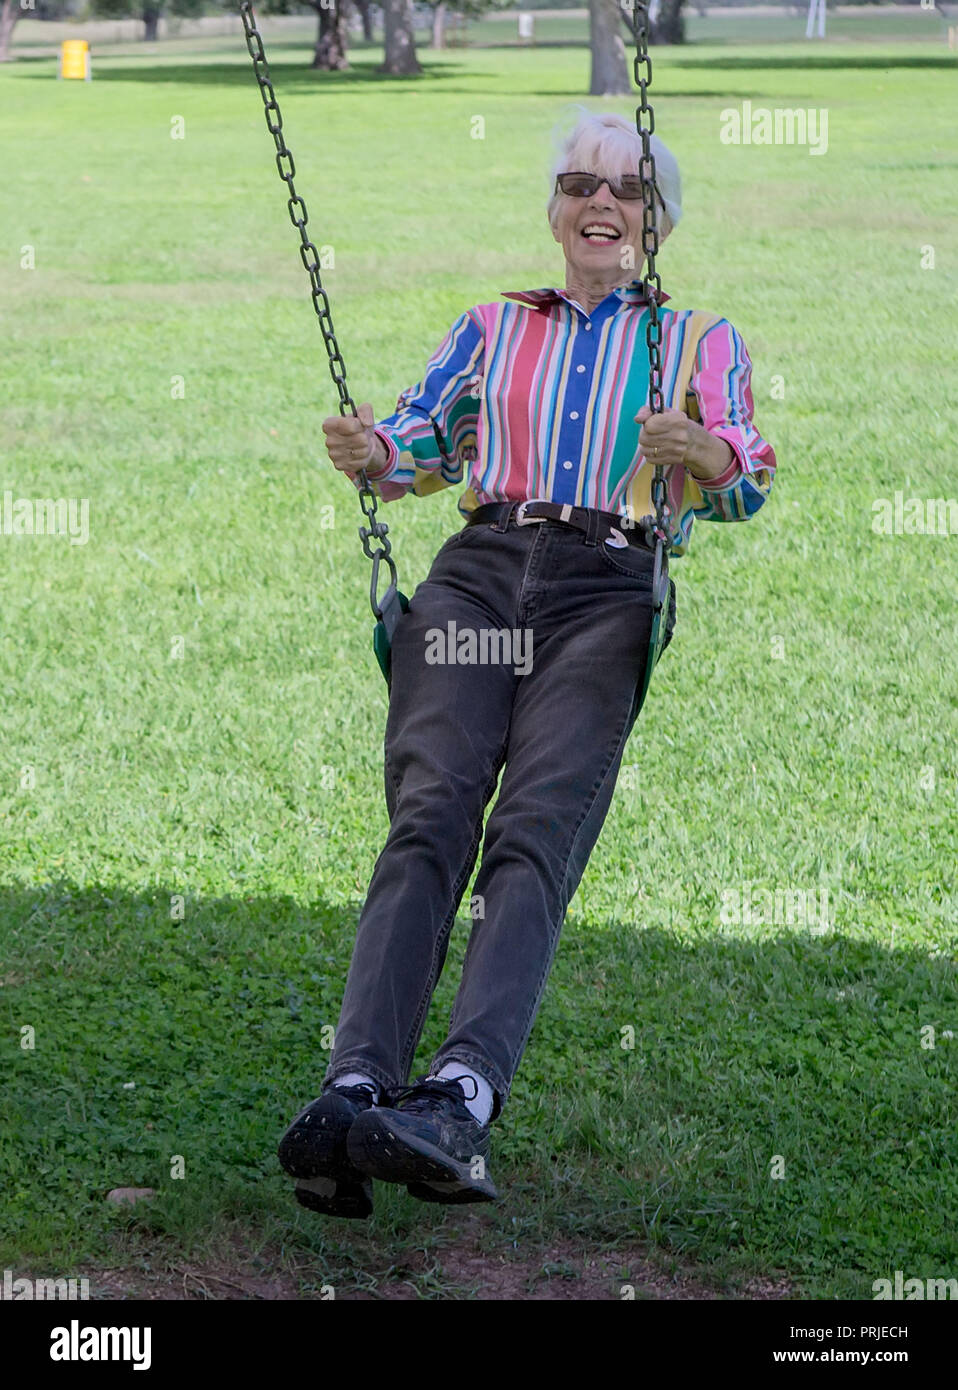 A senior citizen woman enjoying swinging in a public park in far West Texas. - Stock Image